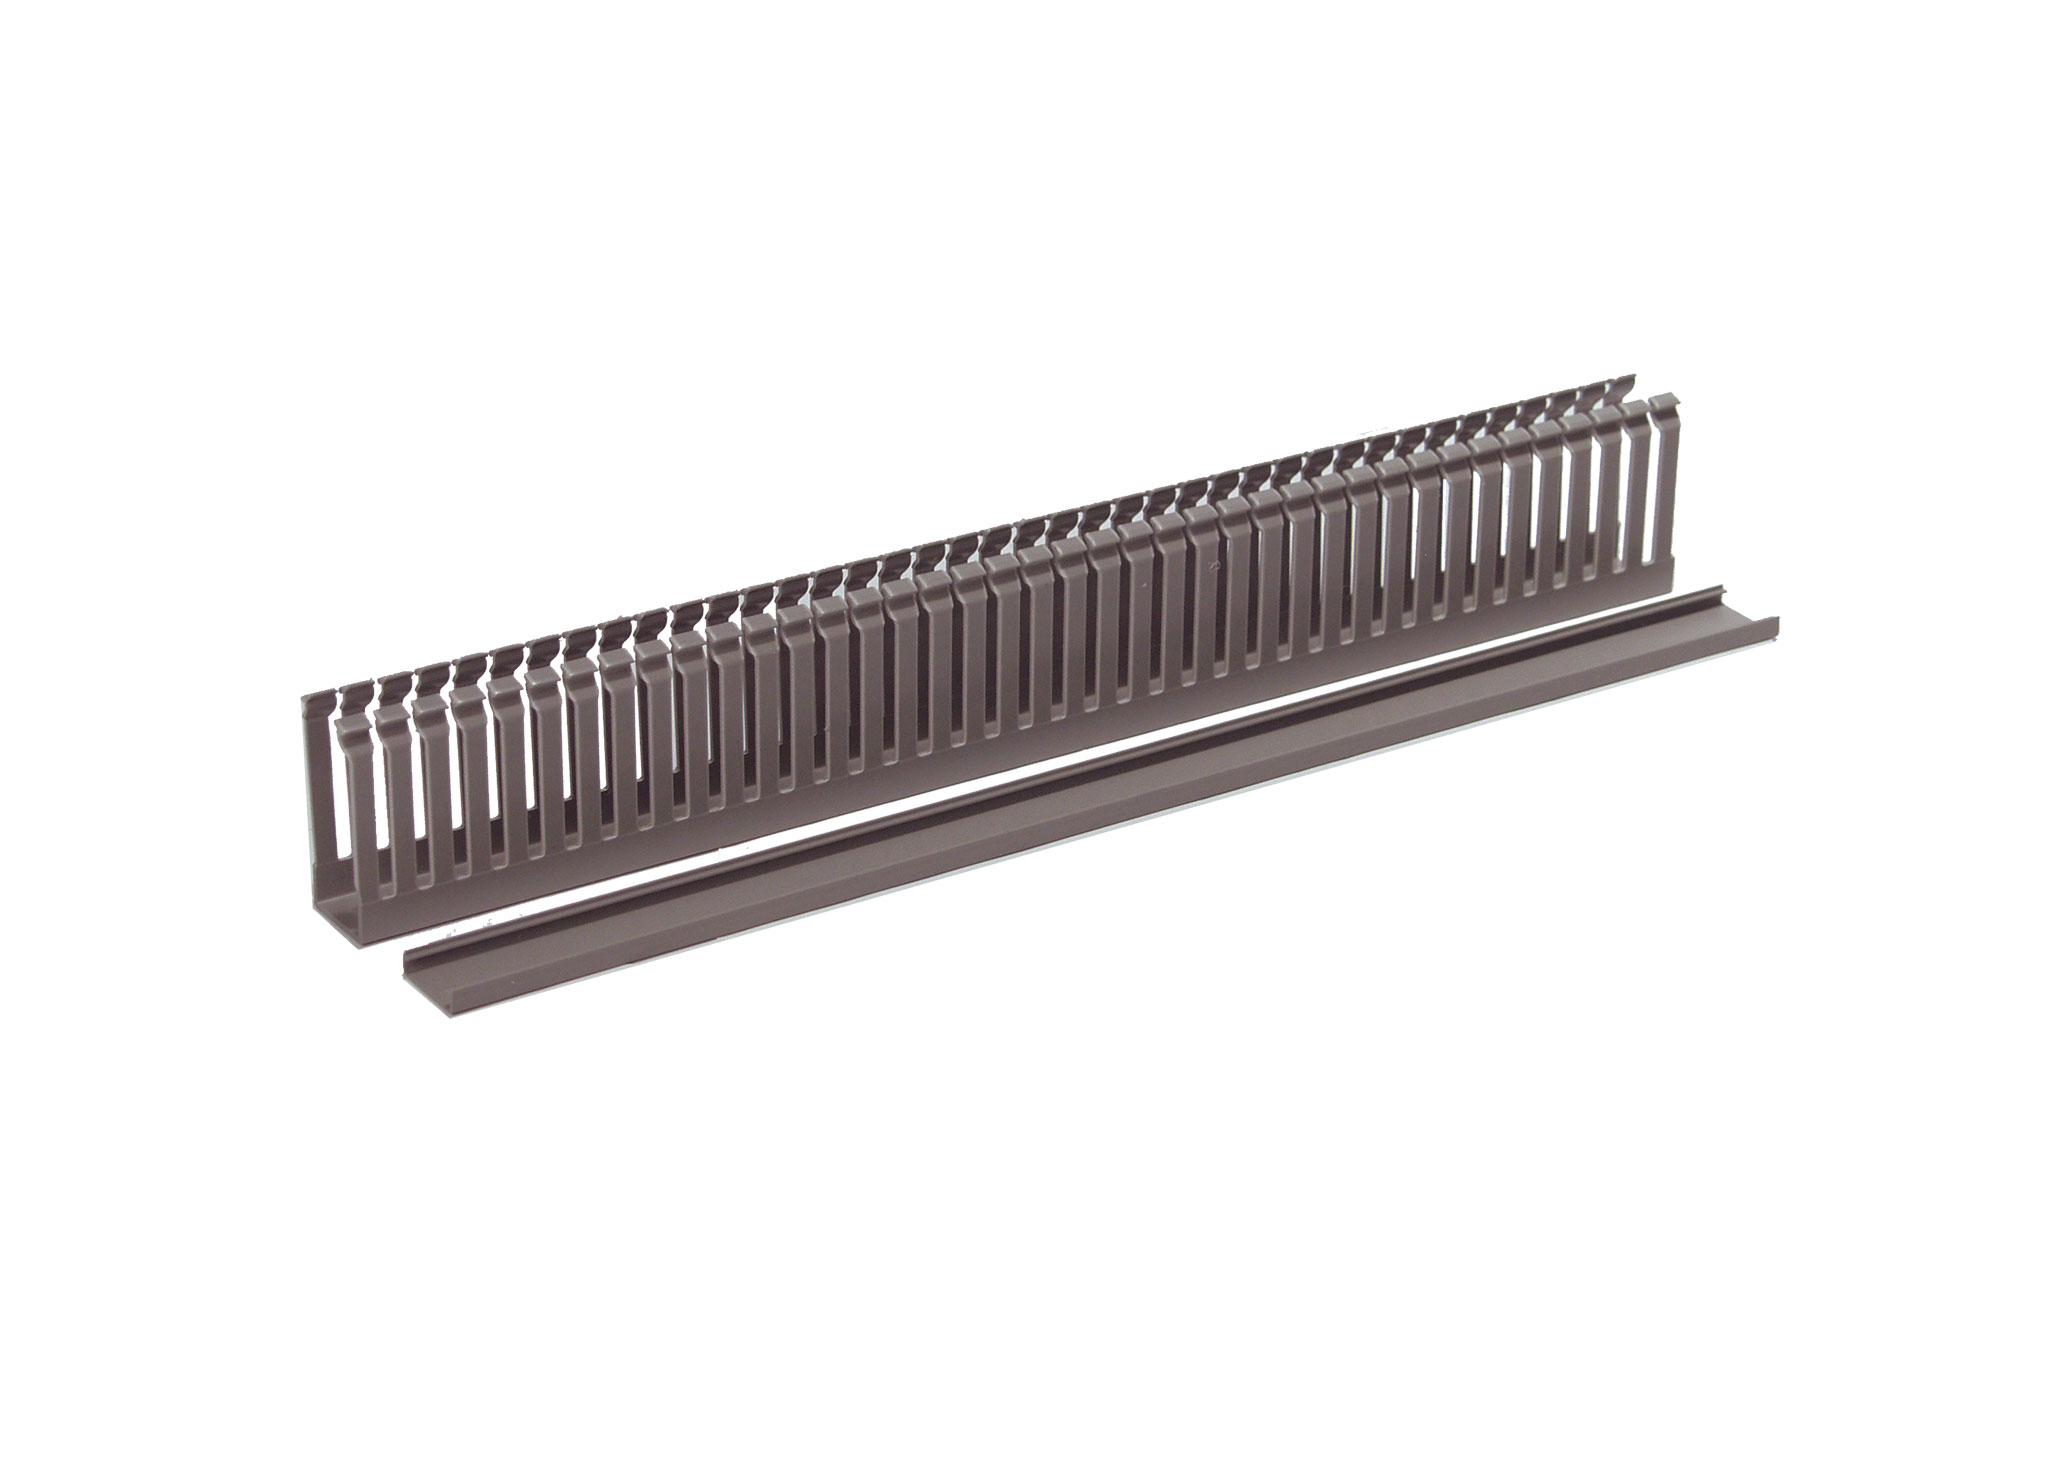 ECS2560 400mm Slotted Trunking Wire Management Duct